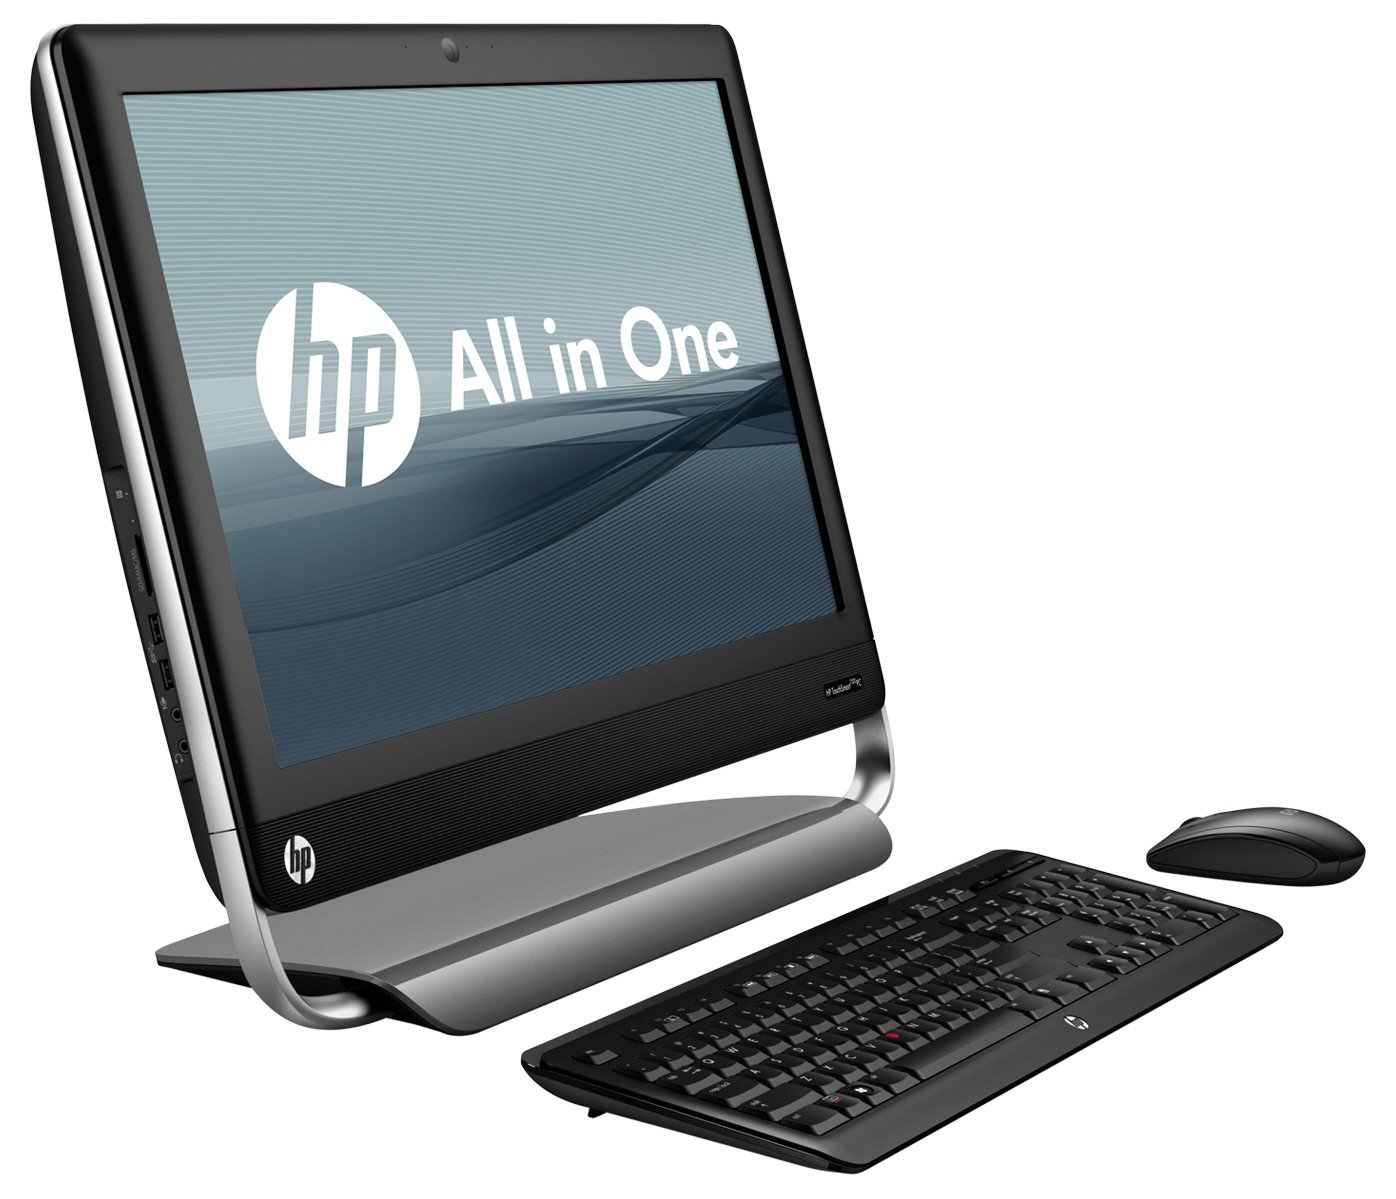 2011 hp all in one computer manual